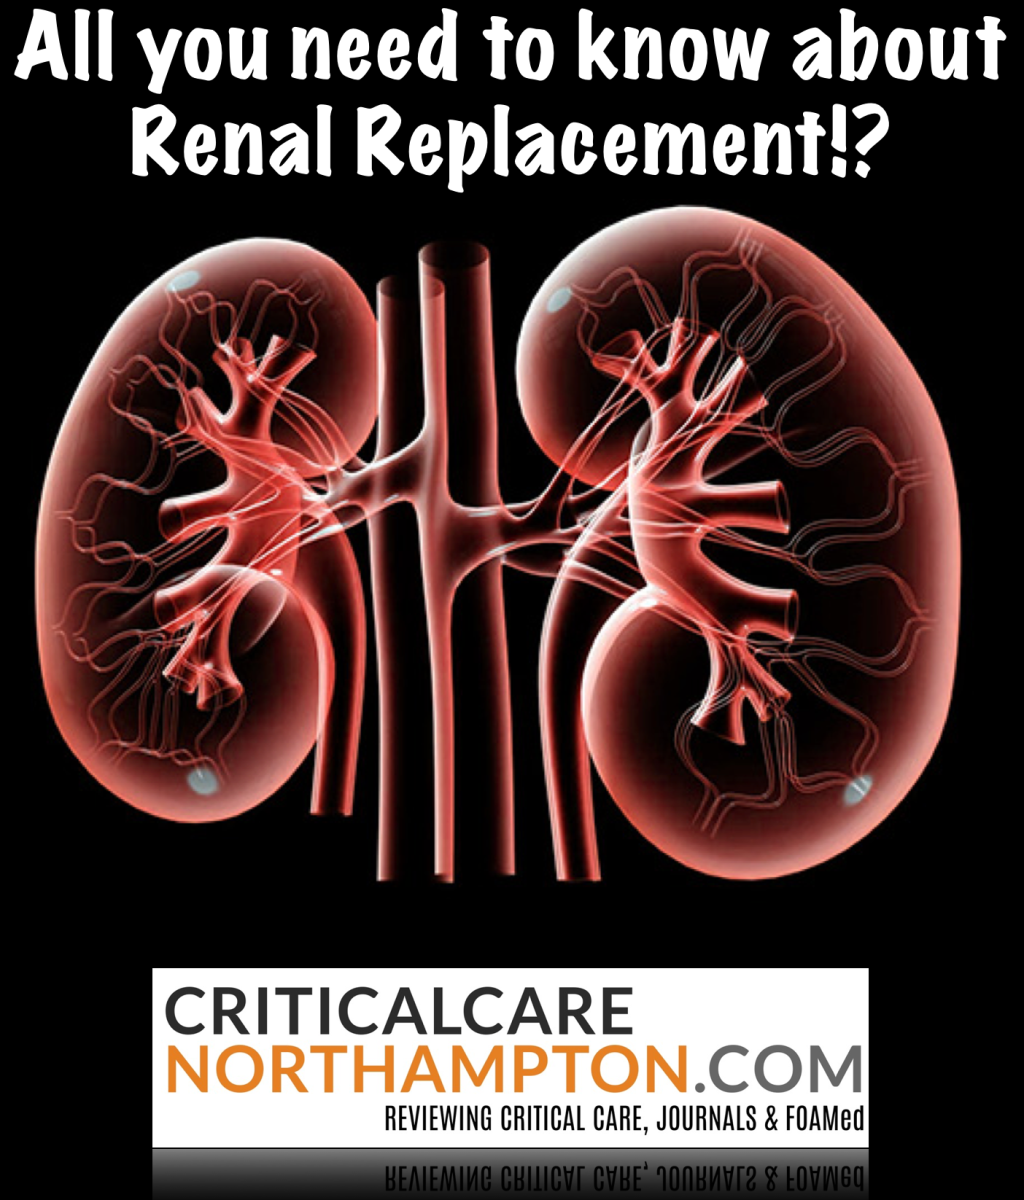 Renal Replacement, busting the confusion! #FOAMed #FOAMcc #FOAMem #dialysis